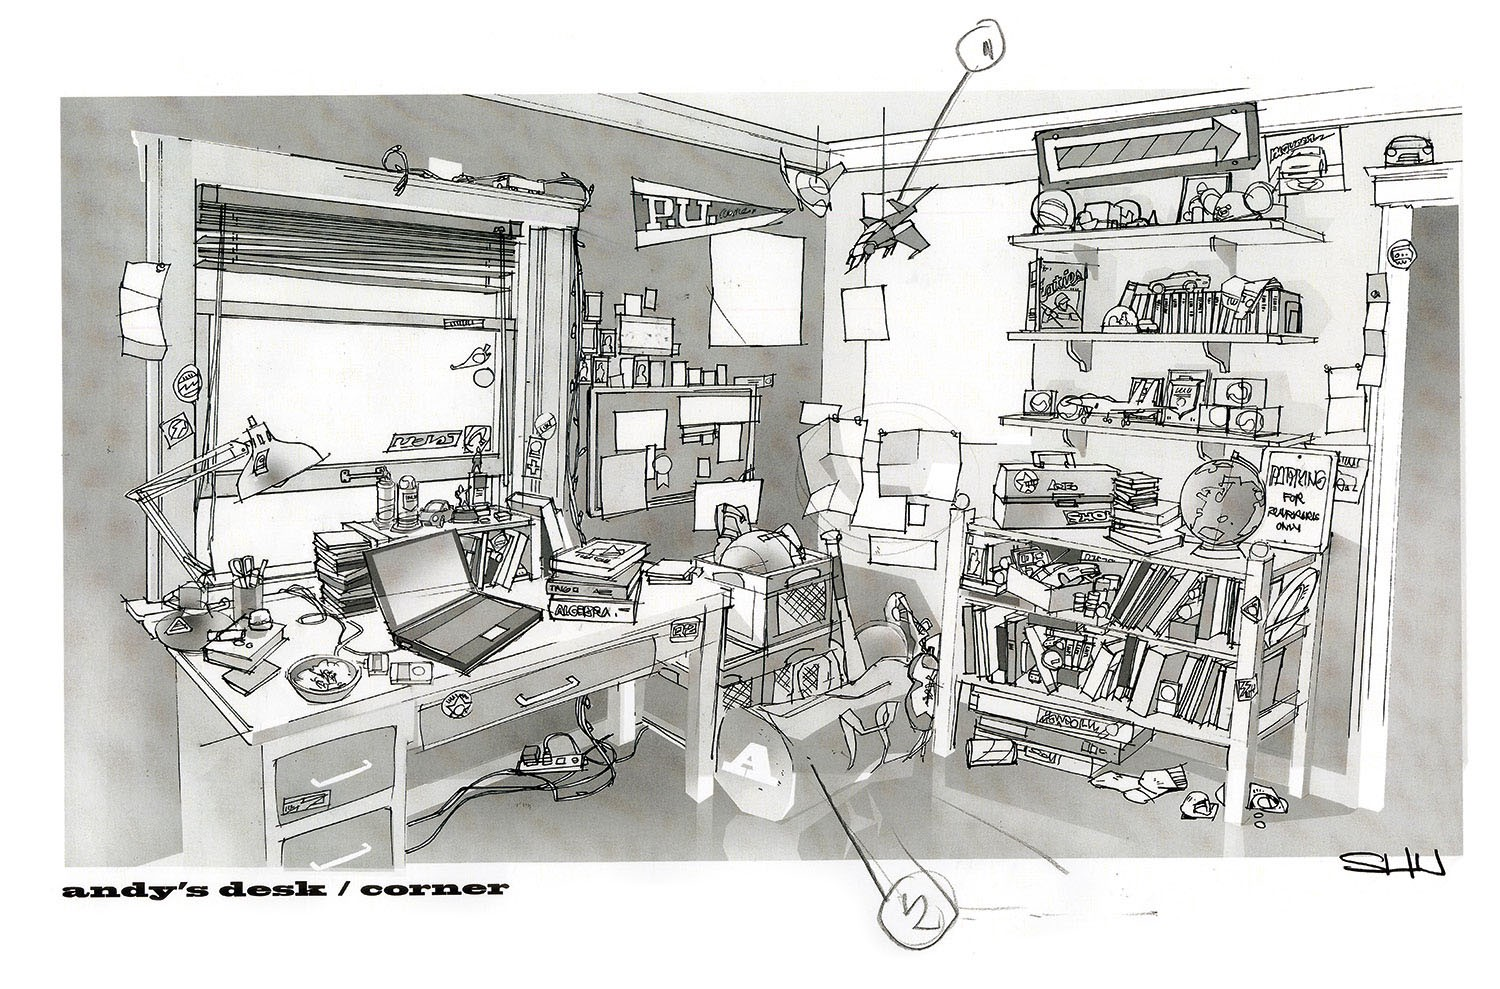 A sketch photo of Toy Story 4 showing Andy's desk